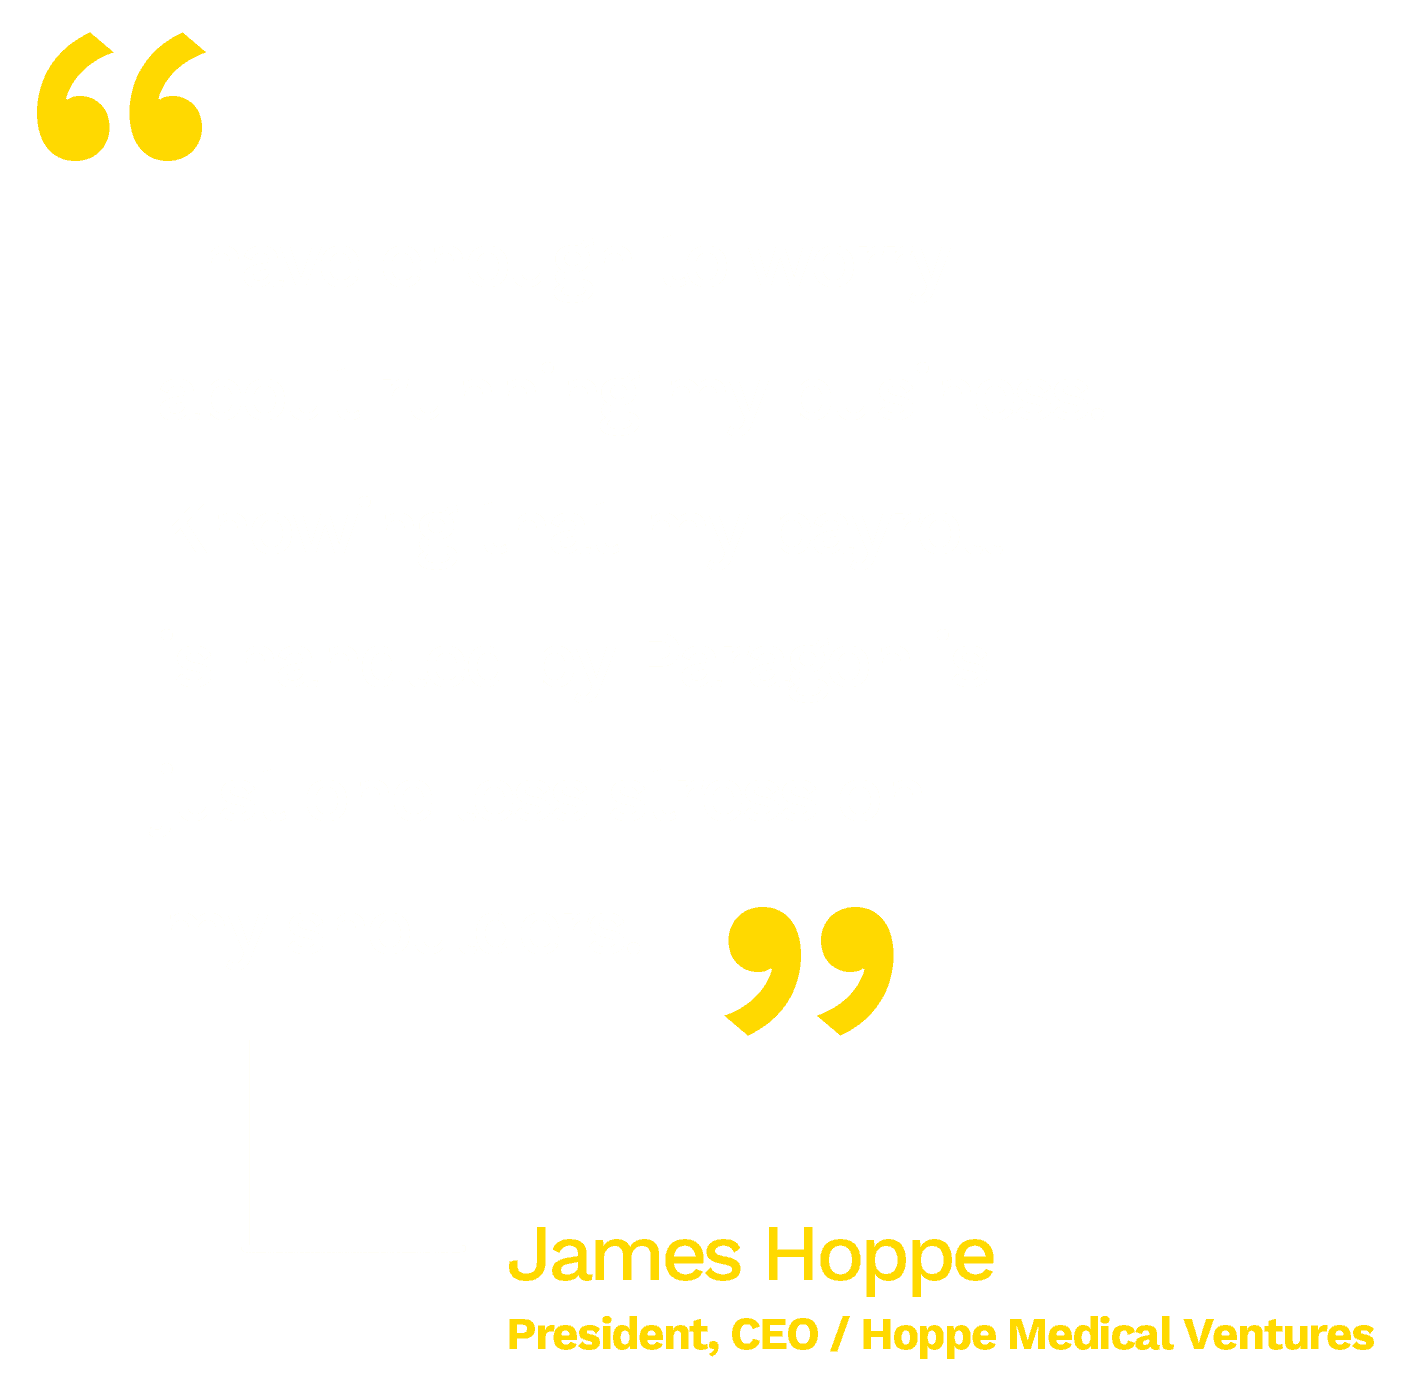 """""""I have enough to worry about running my business. Knowing that my payroll is handled by Paragon is just one less stress on my shoulders."""" - James Hoppe / CEO of Hoppe Medical Ventures"""